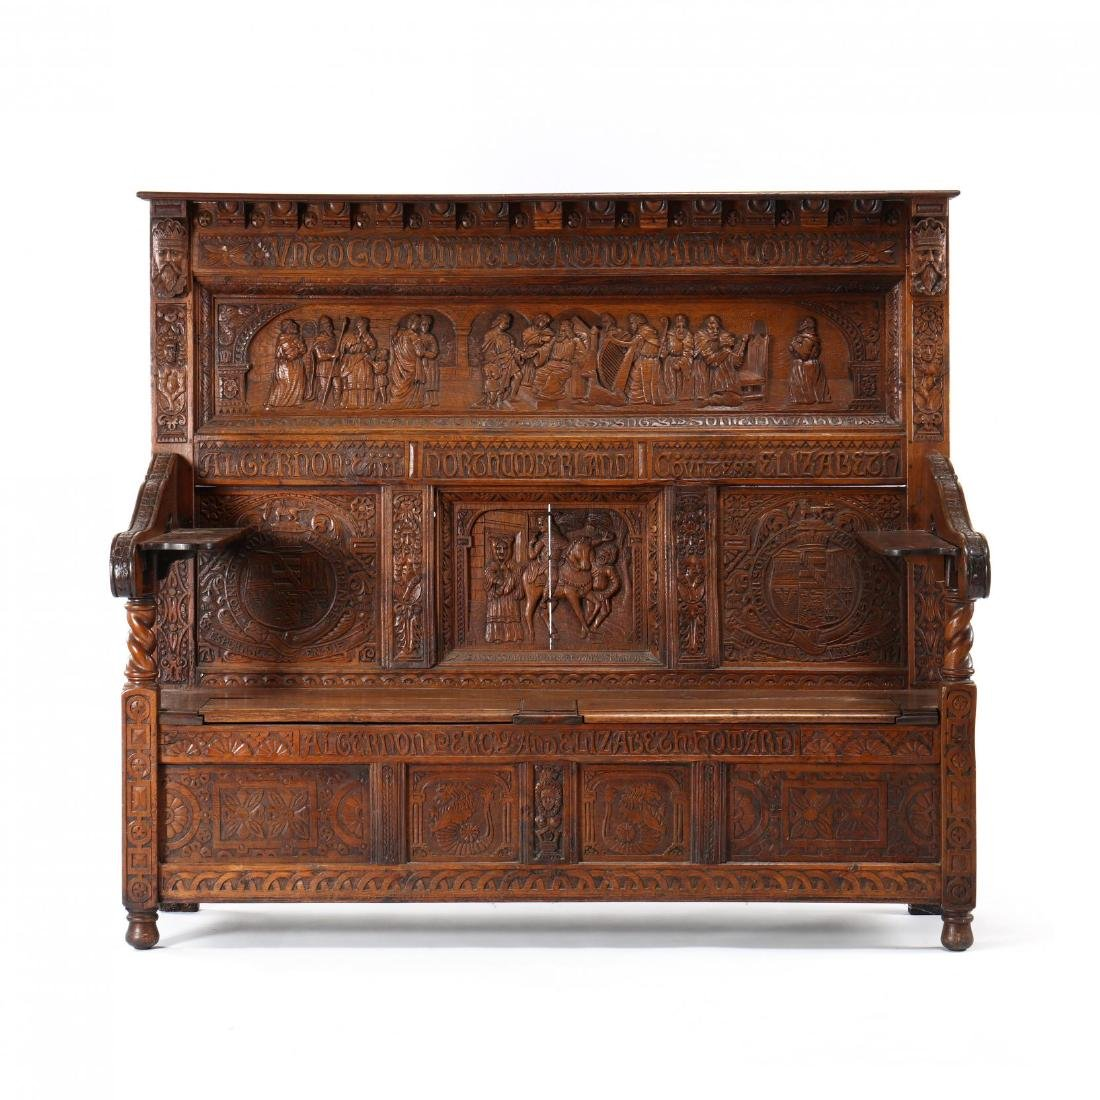 English Renaissance Revival Carved Oak Settle